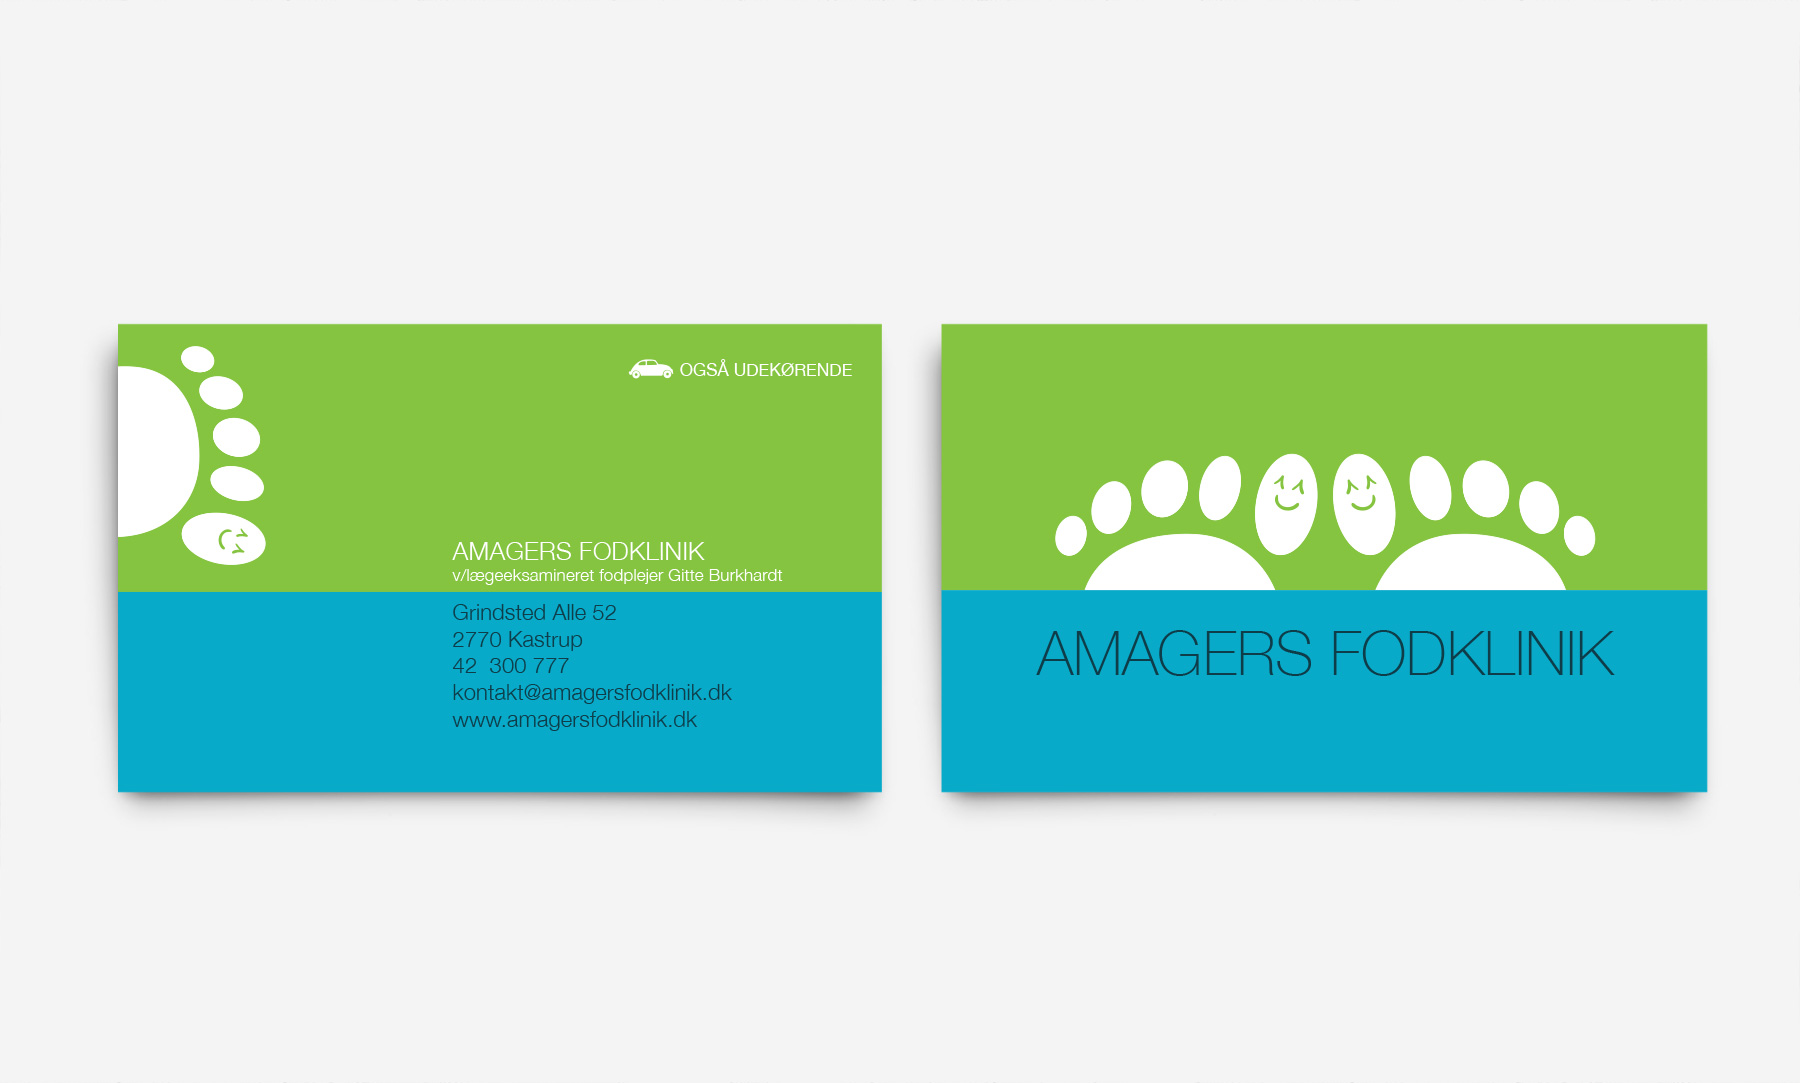 Amagers Fodklinik: Business cards